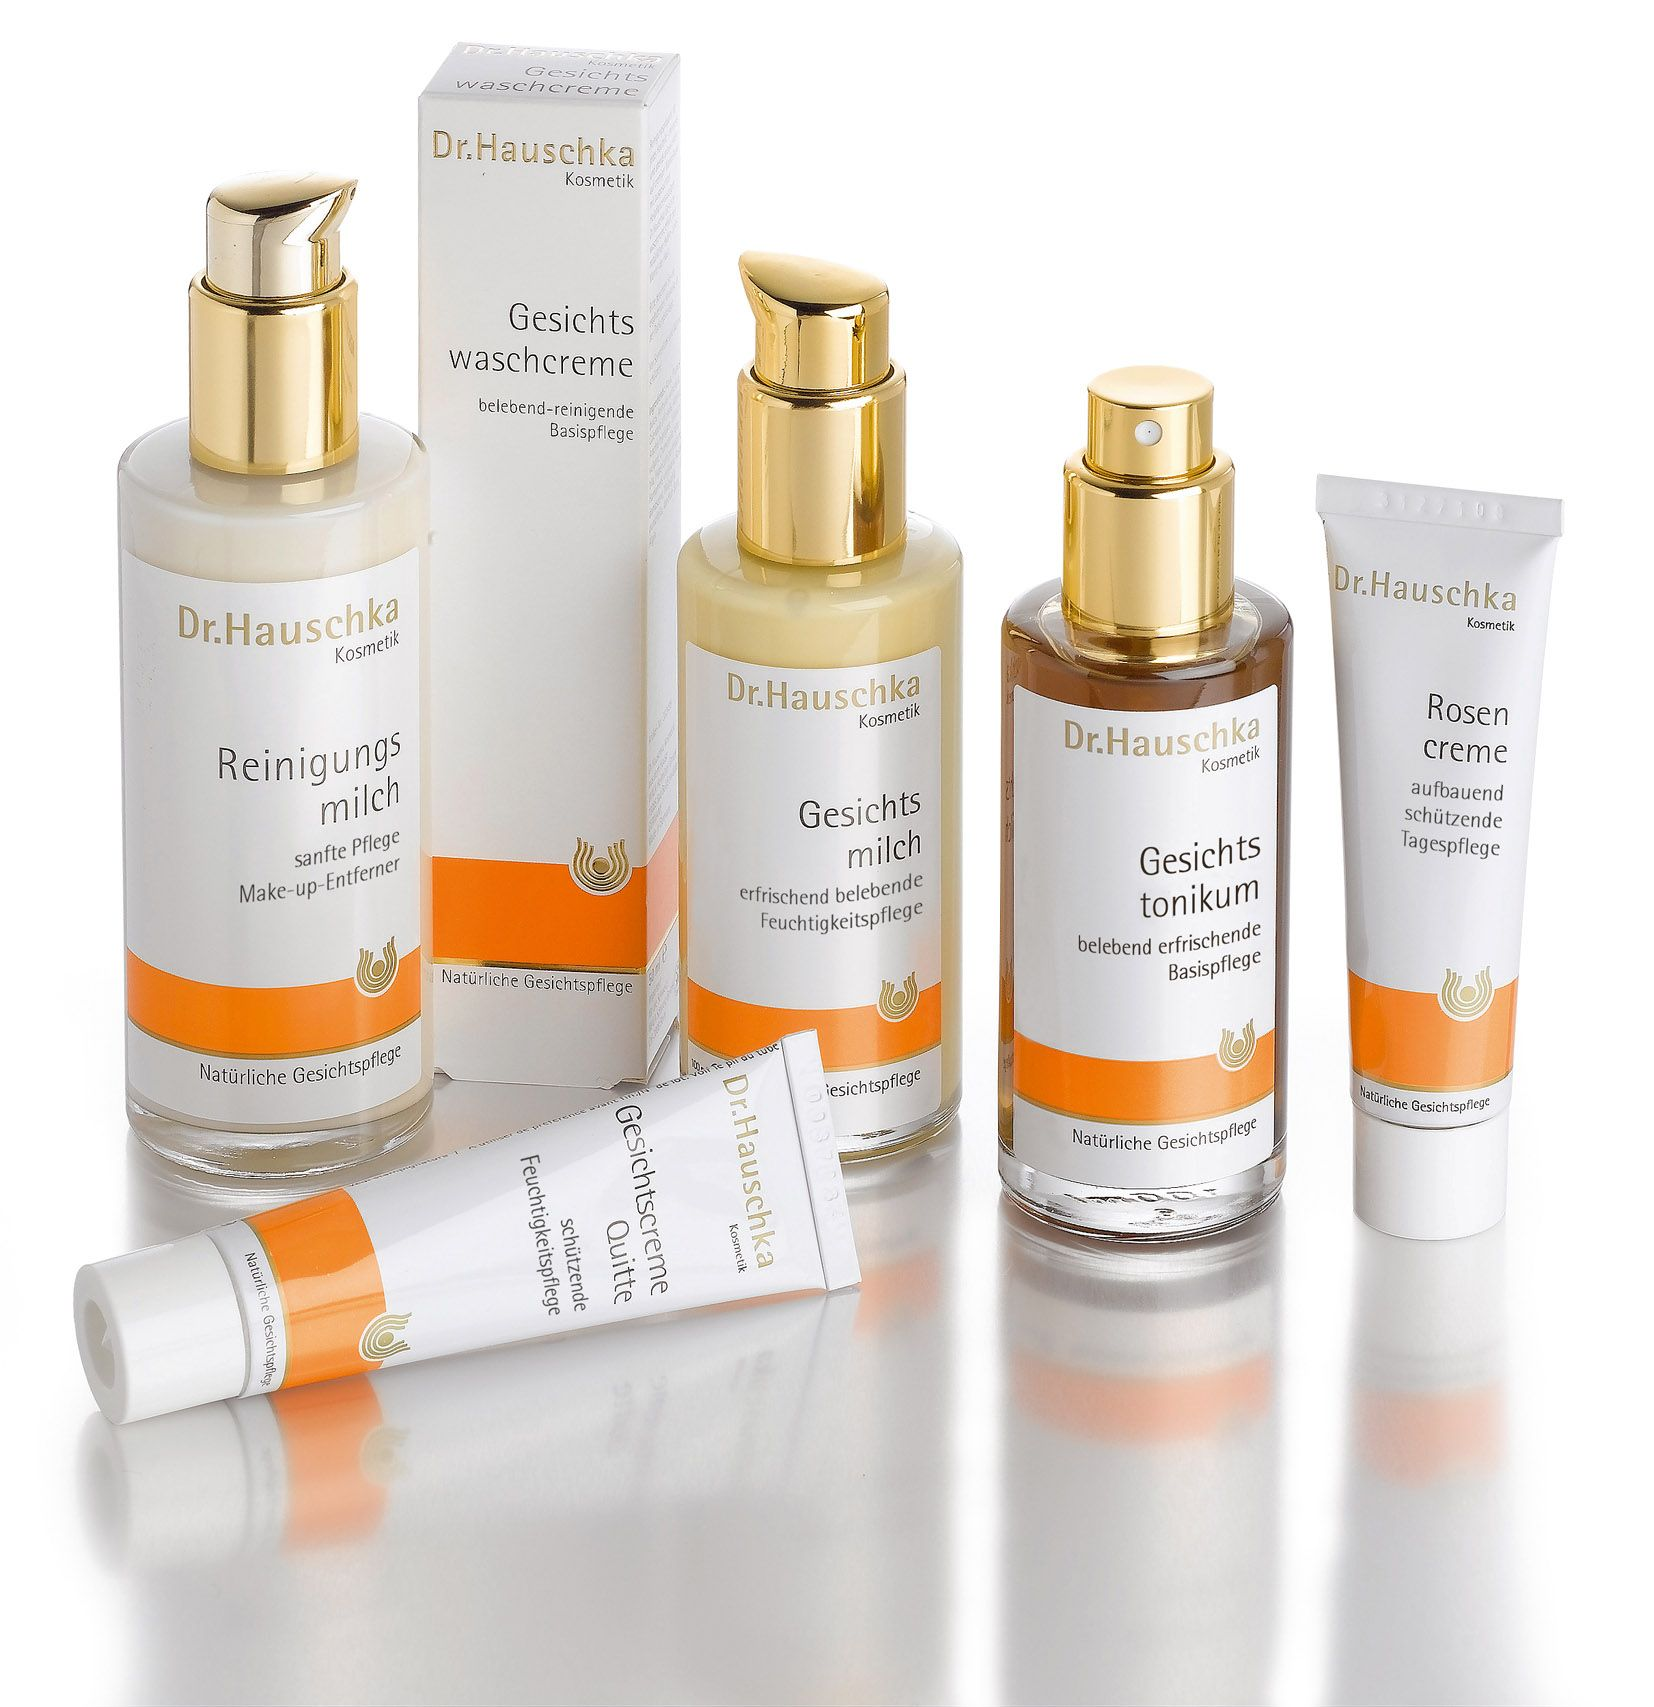 Natura Beauty Spray Jogja: Dr. Hauschka SkinCare. Started Using This Product About A